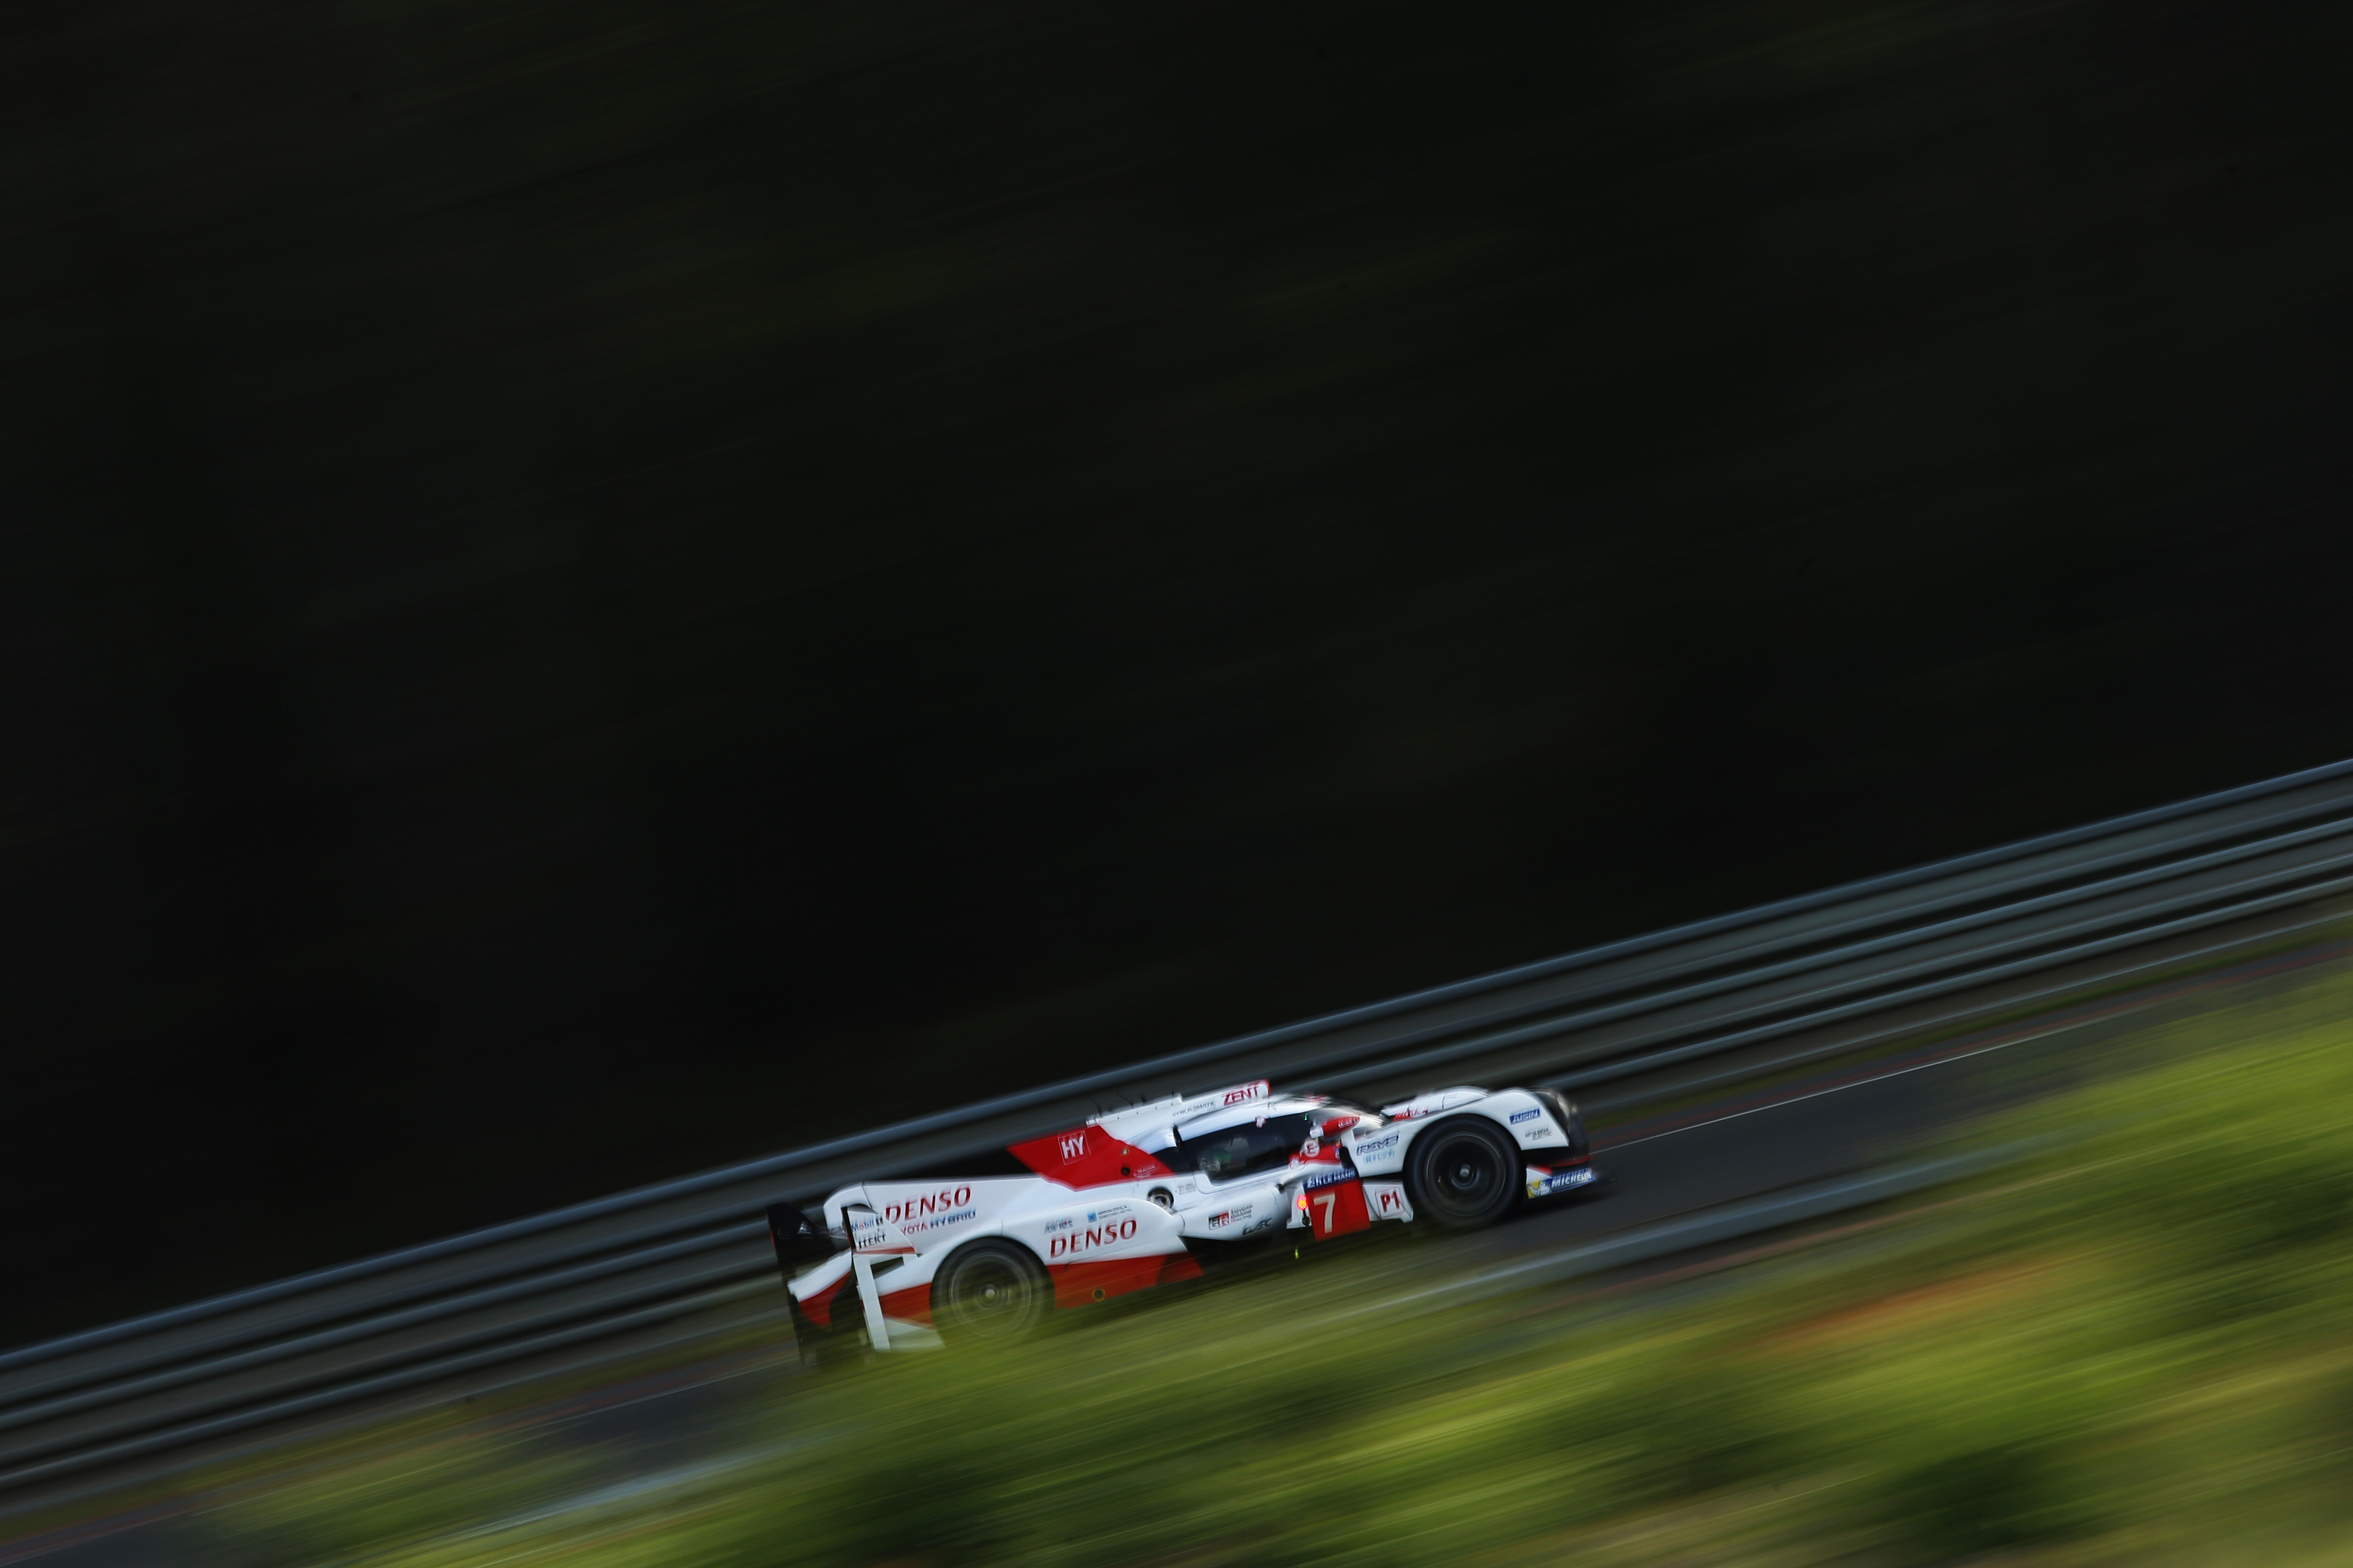 le mans 2017 live stream how to watch 24 hours of racing online. Black Bedroom Furniture Sets. Home Design Ideas